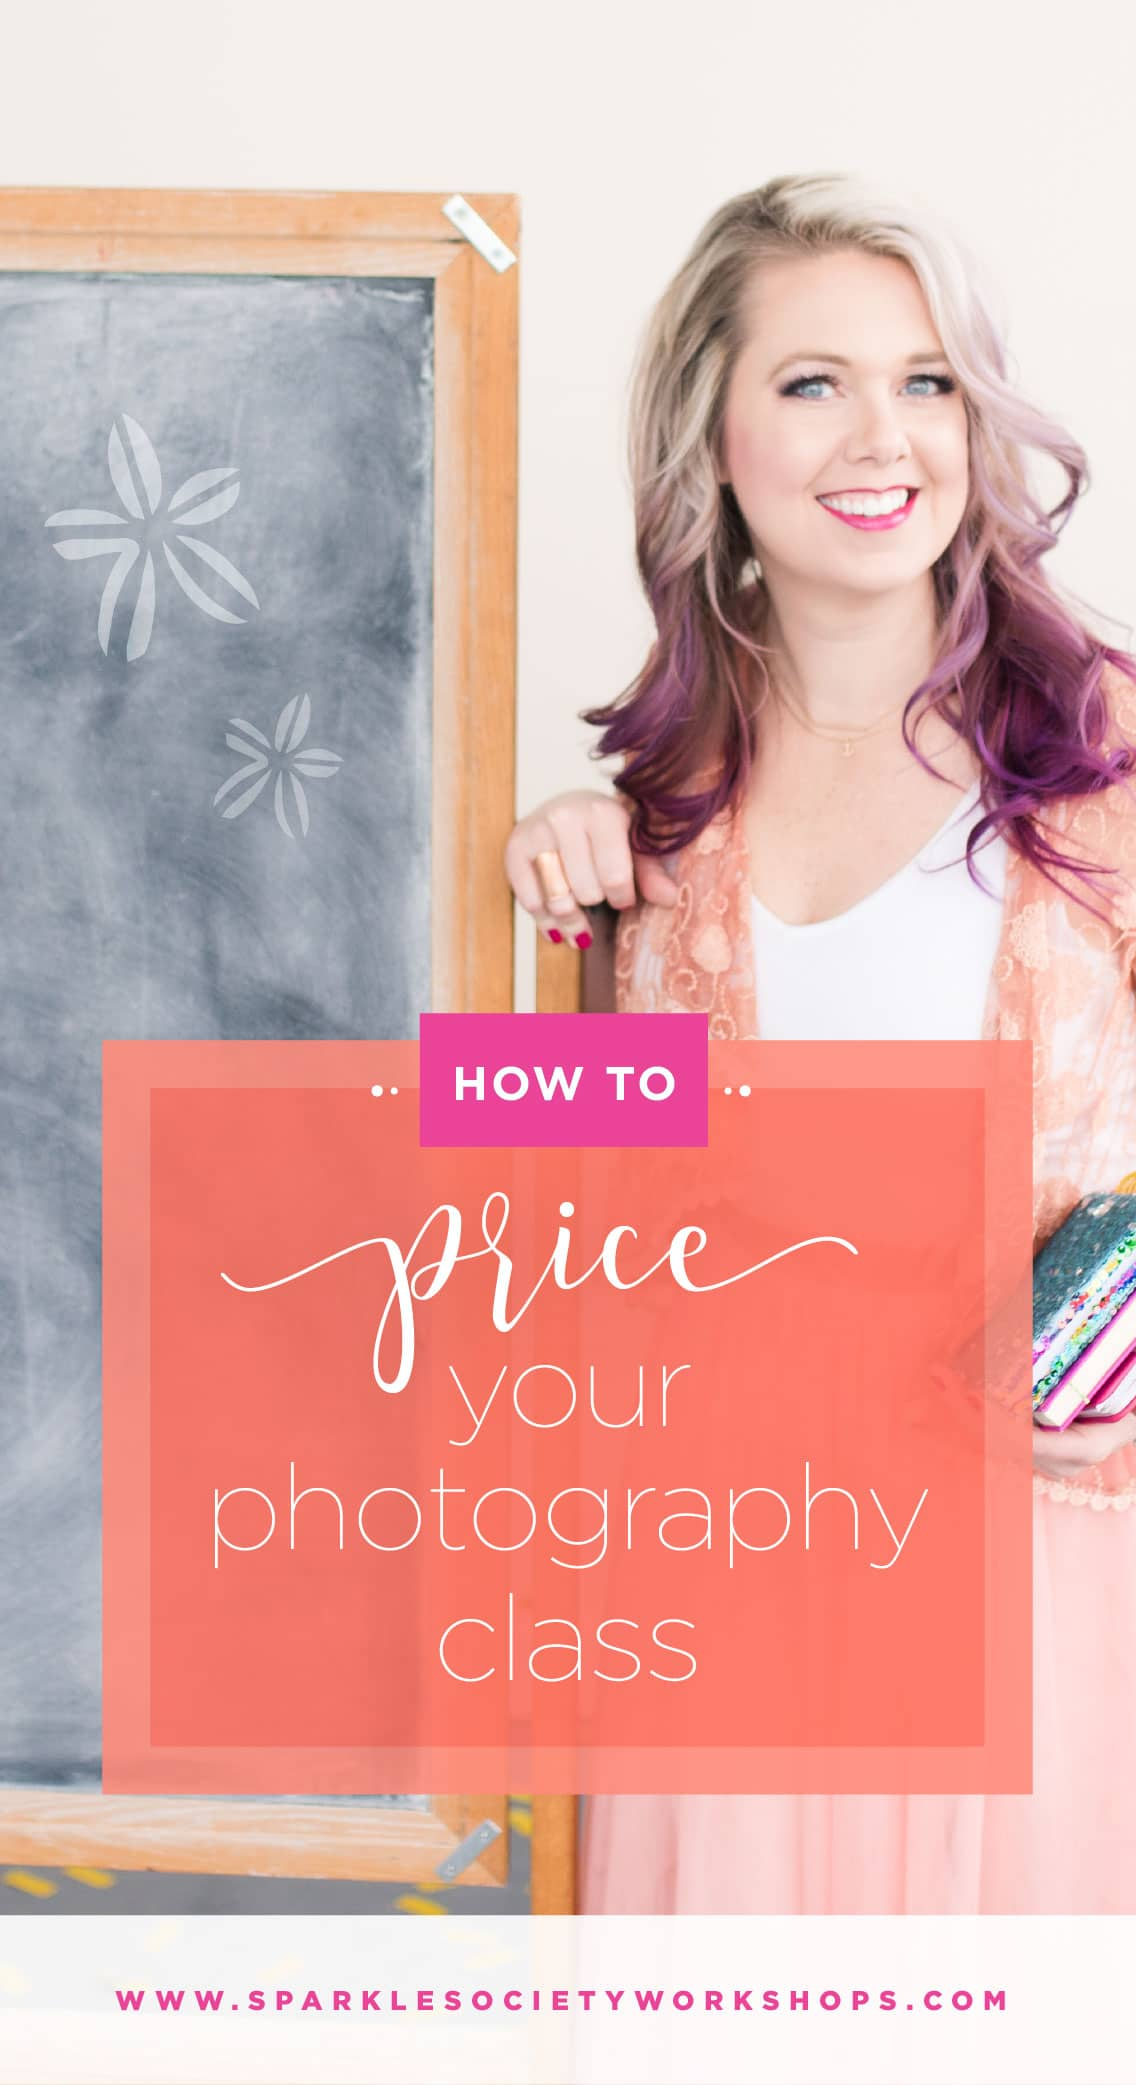 The overwhelm is real when it comes to pricing your beginning photography class, but I've laid it out so you can provide value and confidently charge your worth. Pin now, put in practice later!